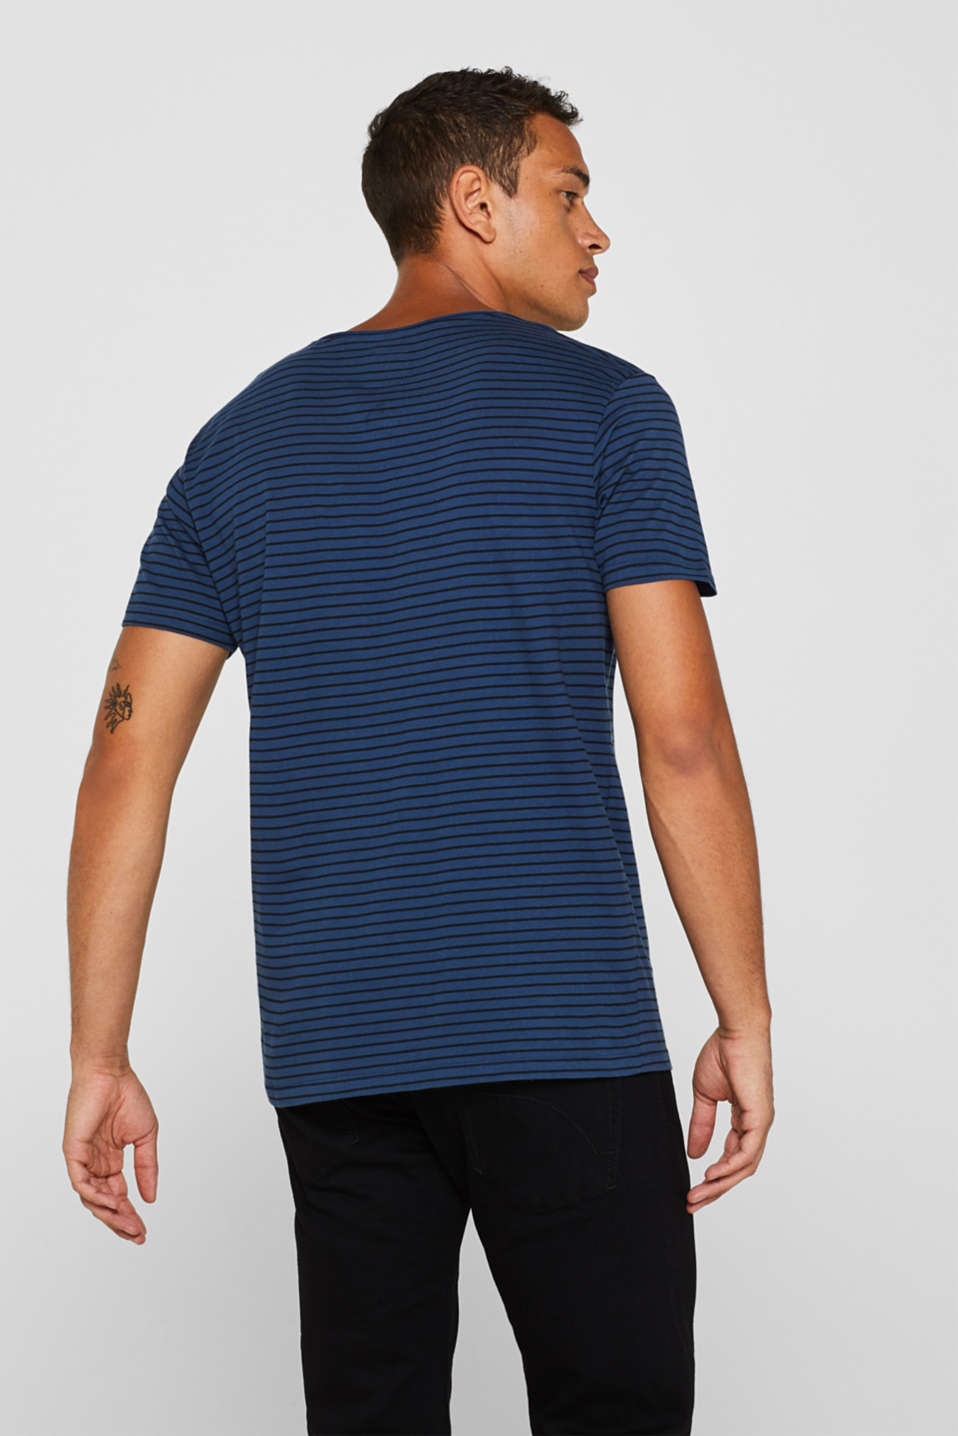 Jersey T-shirt with stripes, 100% cotton, BLUE, detail image number 3